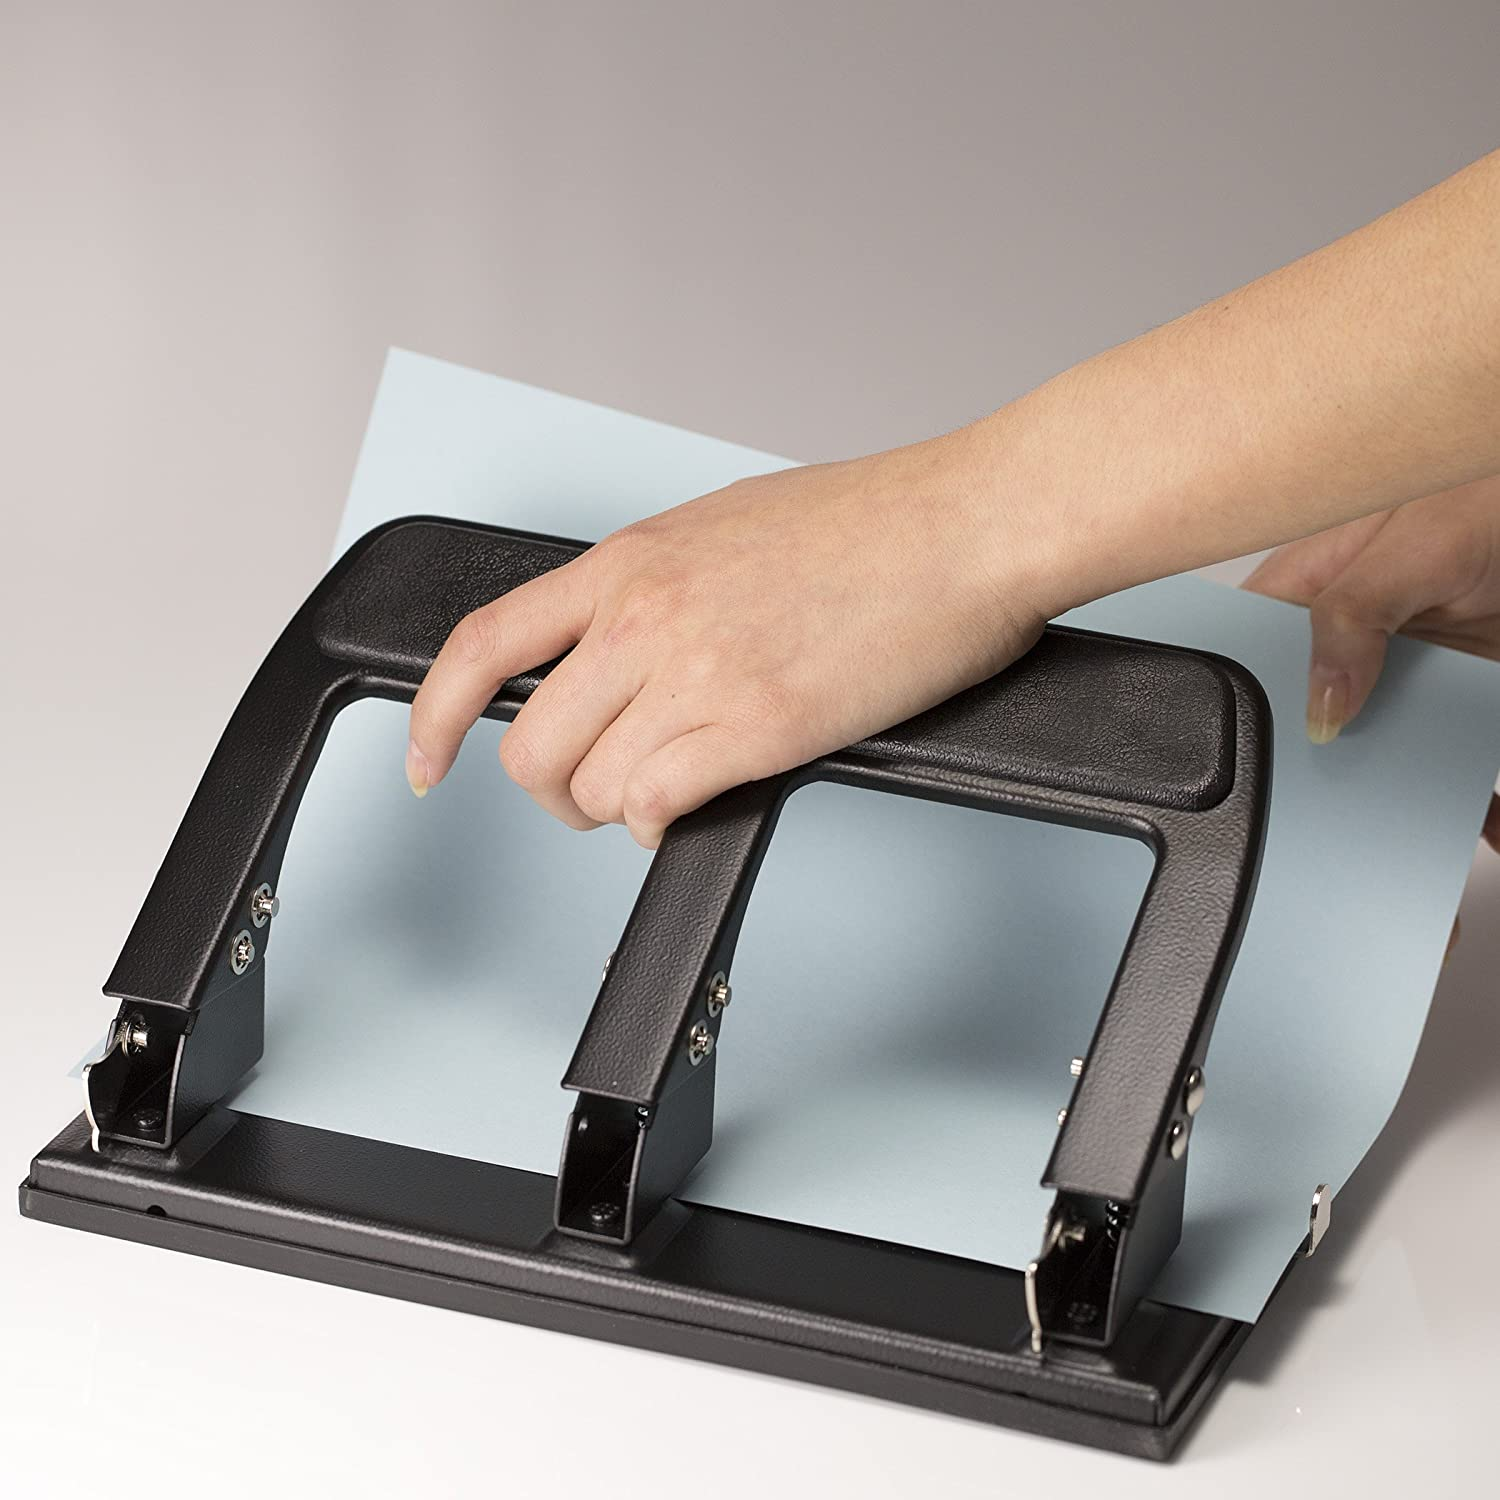 Officemate Heavy Duty 3 Hole Punch with Padded Handle, 40-Sheet Capacity, Black (90089), Medium (25-99) : Manual Multi Hole Paper Punches : Office Products